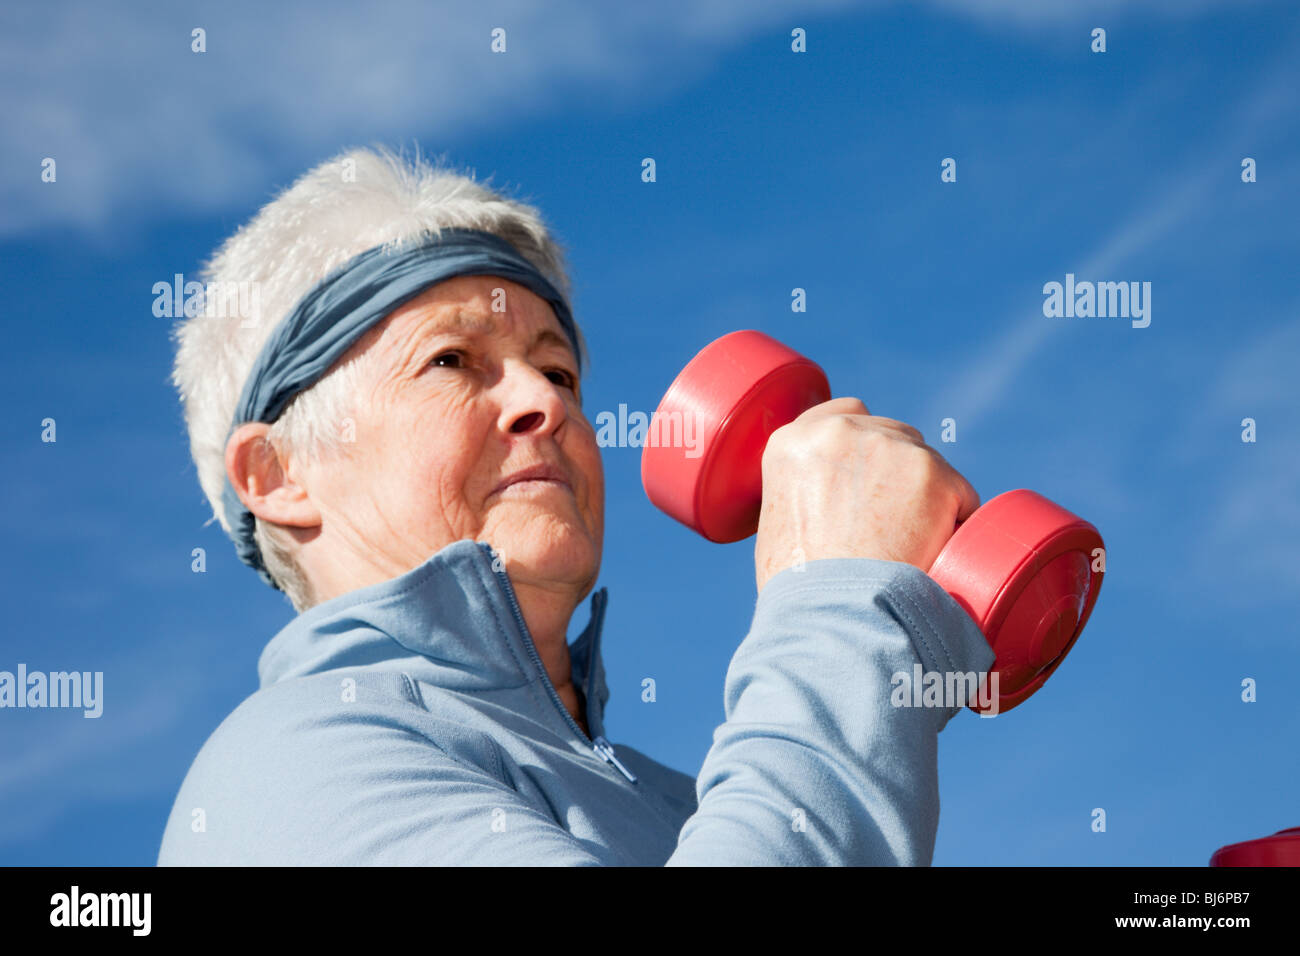 Senior woman wearing a sweatband whilst exercising with dumbbell hand weights outdoors. Britain, UK. - Stock Image